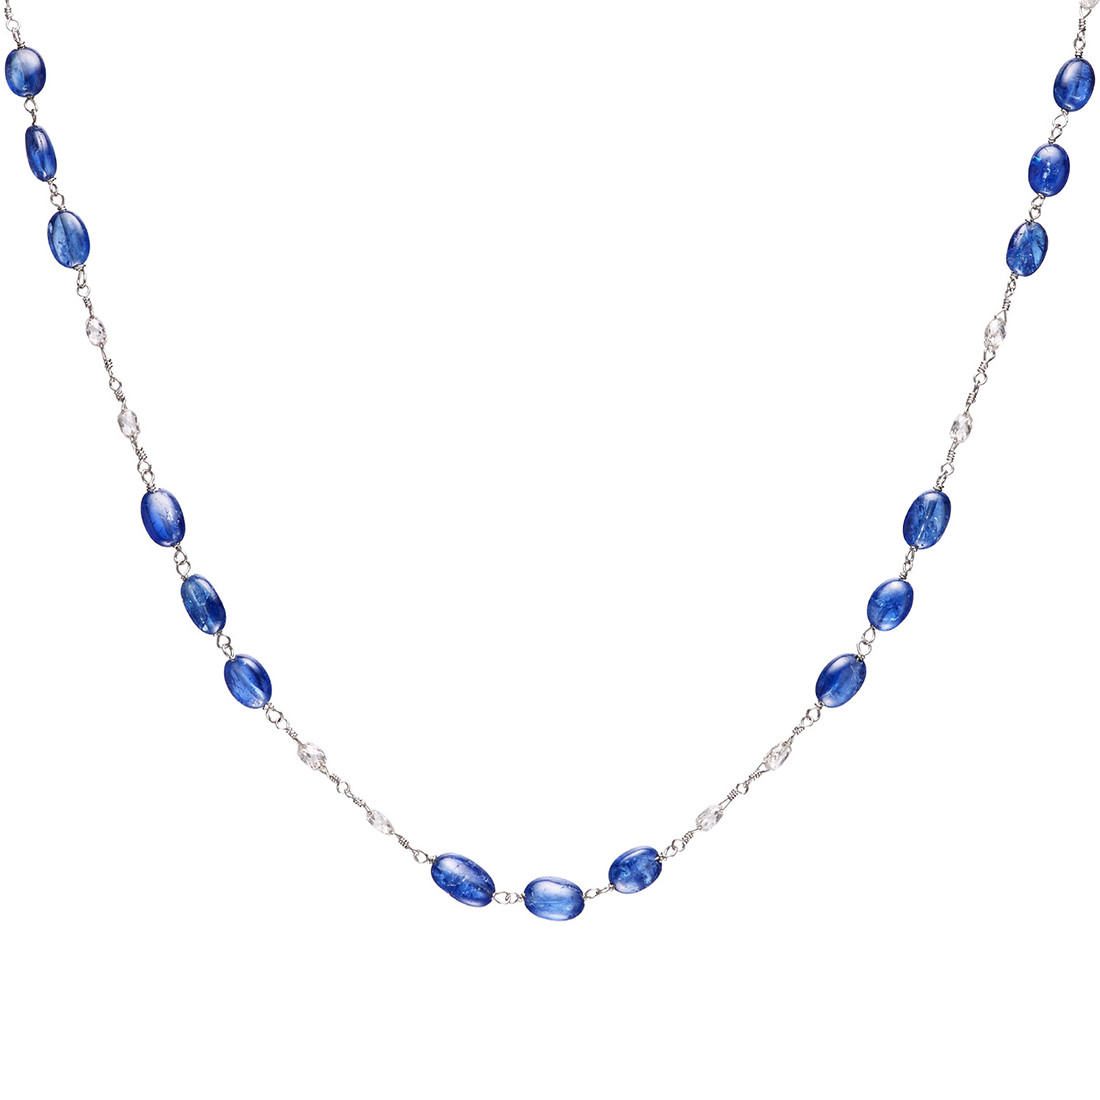 Sapphire Bead & Diamond Briolette Chain Necklace